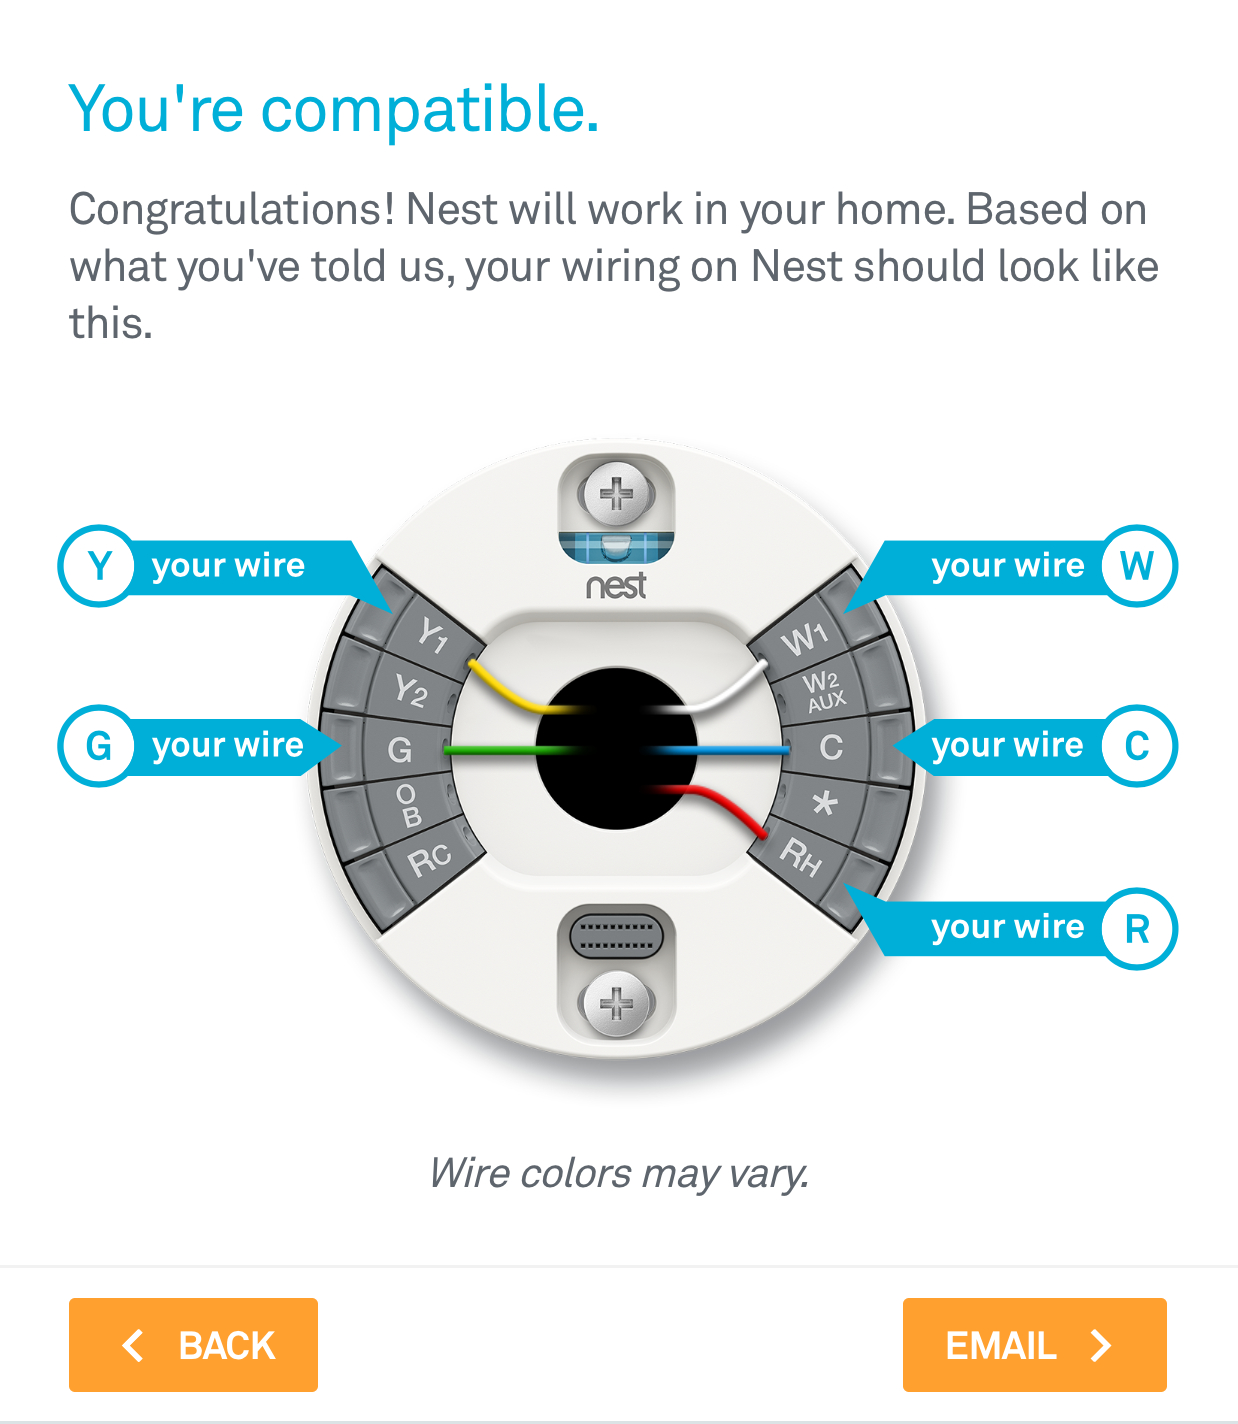 How To: Install The Nest Thermostat | The Craftsman Blog - What Is The Star Stand For On The Nest Thermostat Wiring Diagram